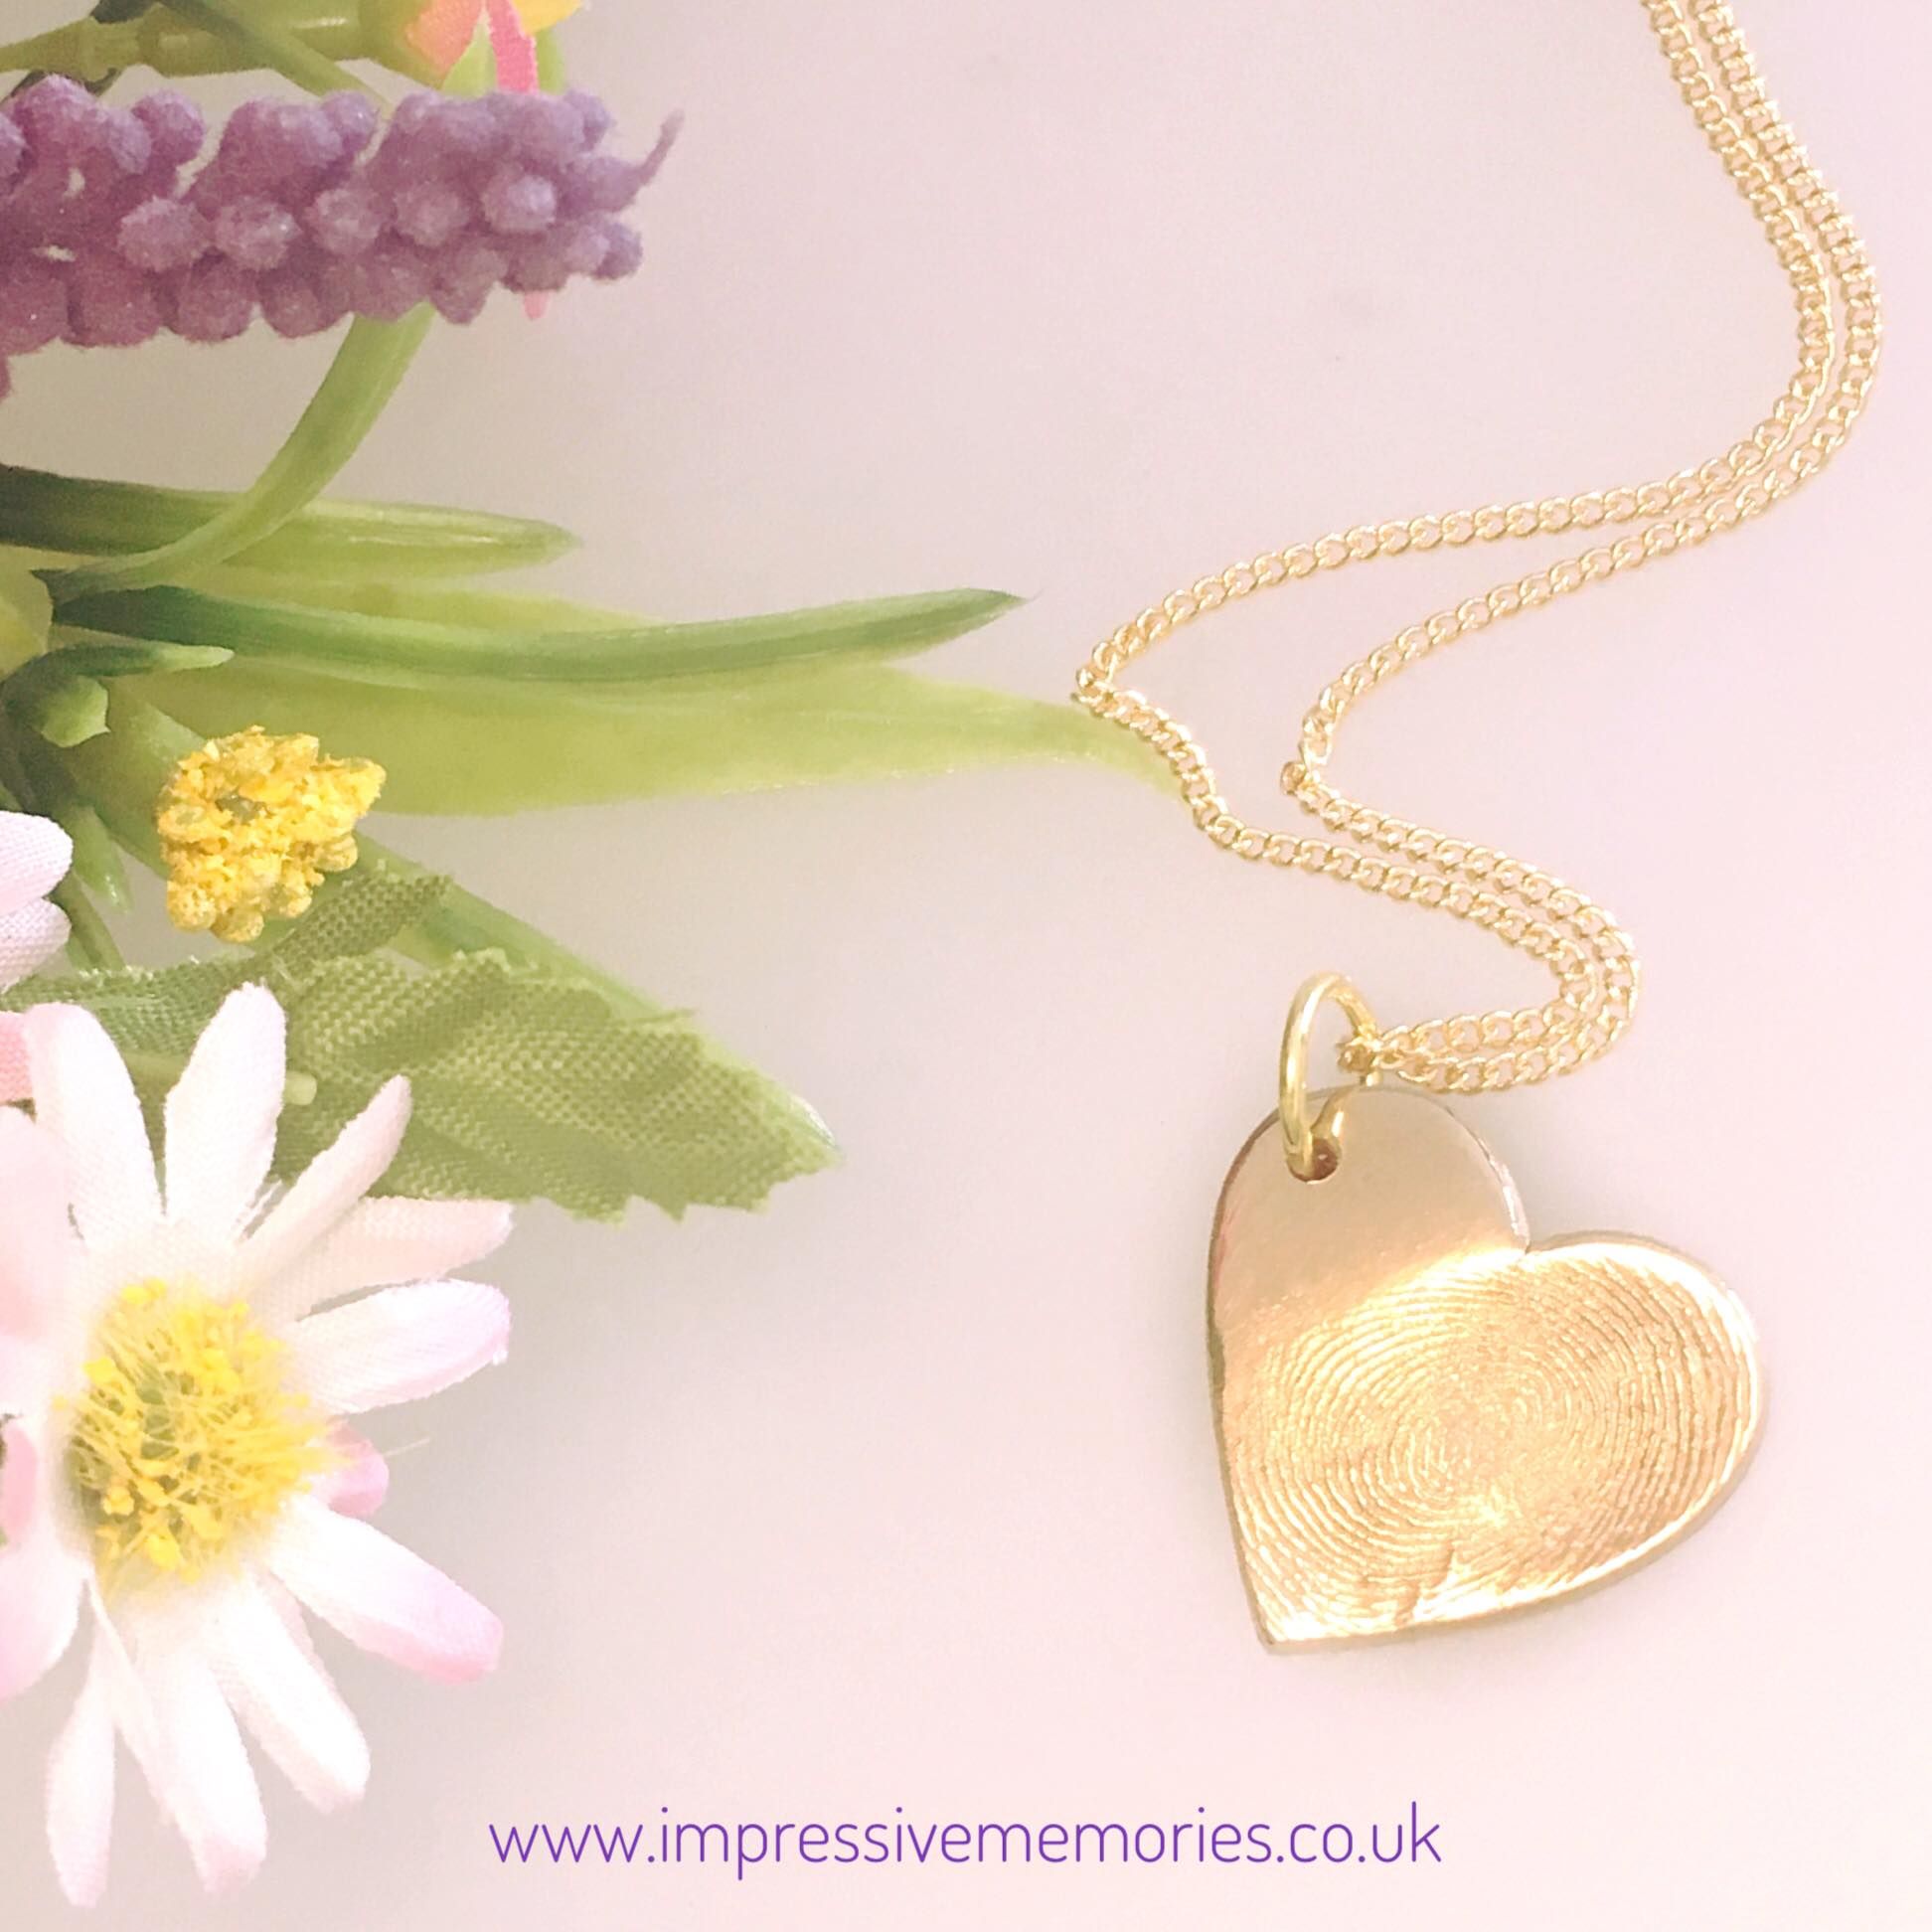 golden fingerprint charm with necklace